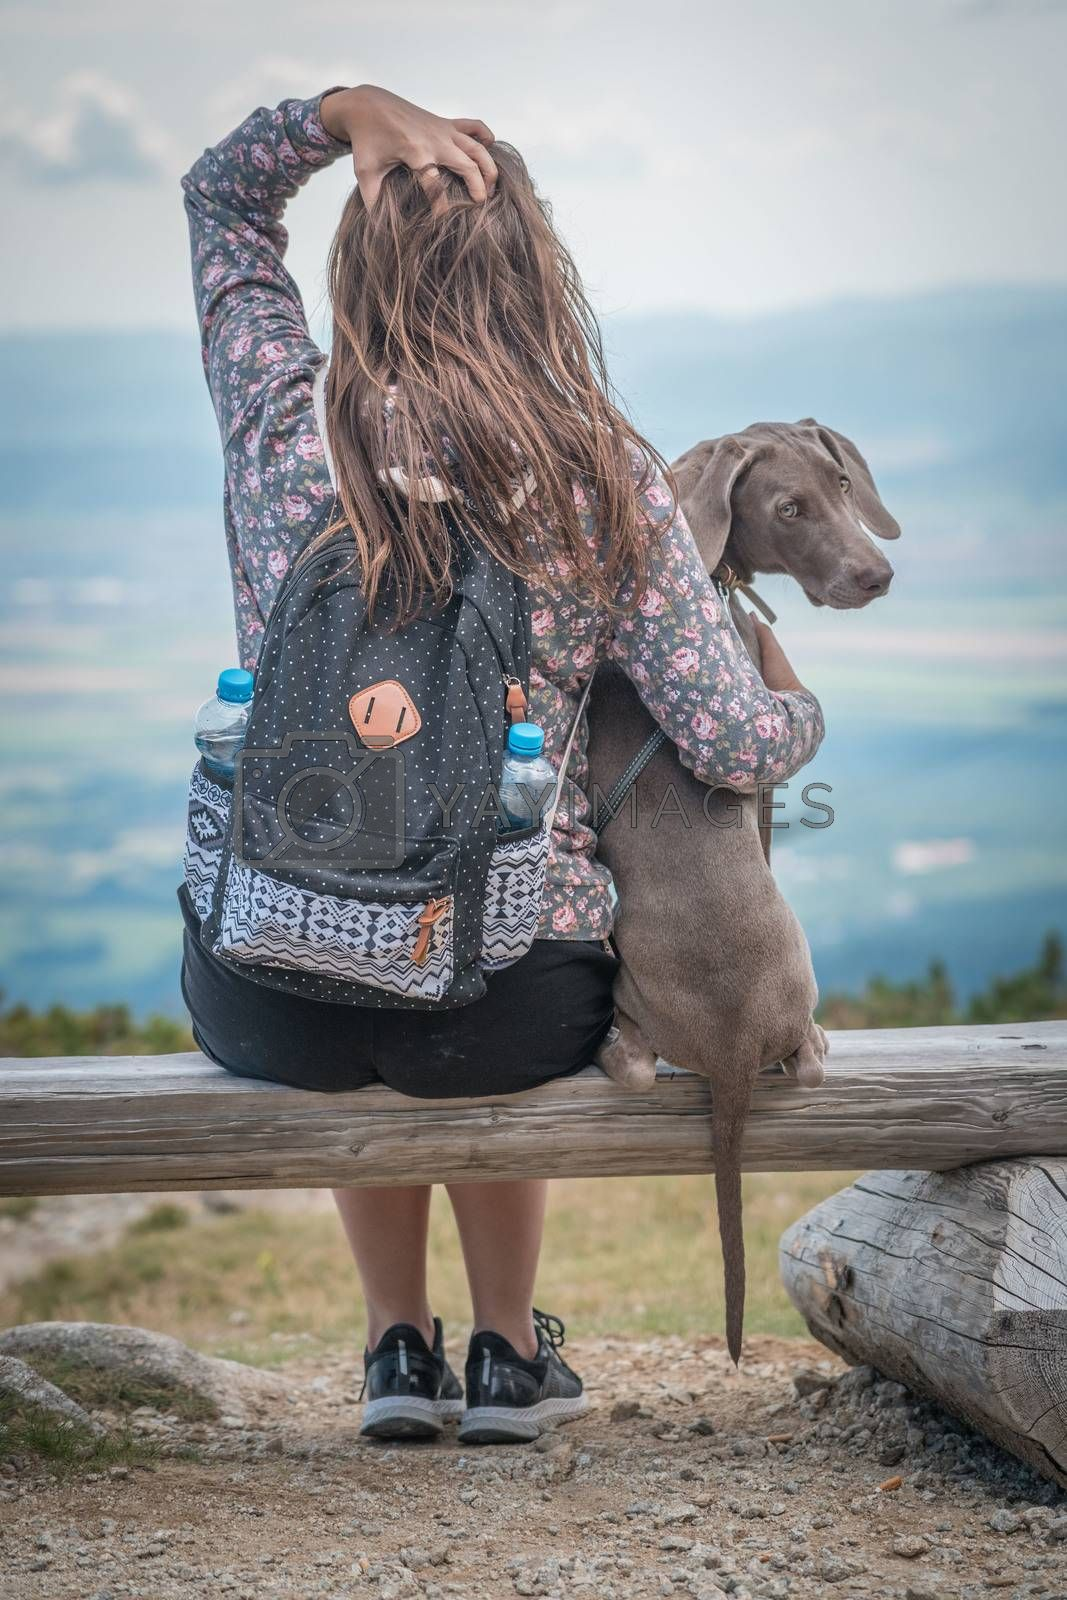 Royalty free image of Young attractive woman with her dog enjoying the view from a bench in the mountains. Friendship with pets concept. Dog is sitting next to her. by petrsvoboda91